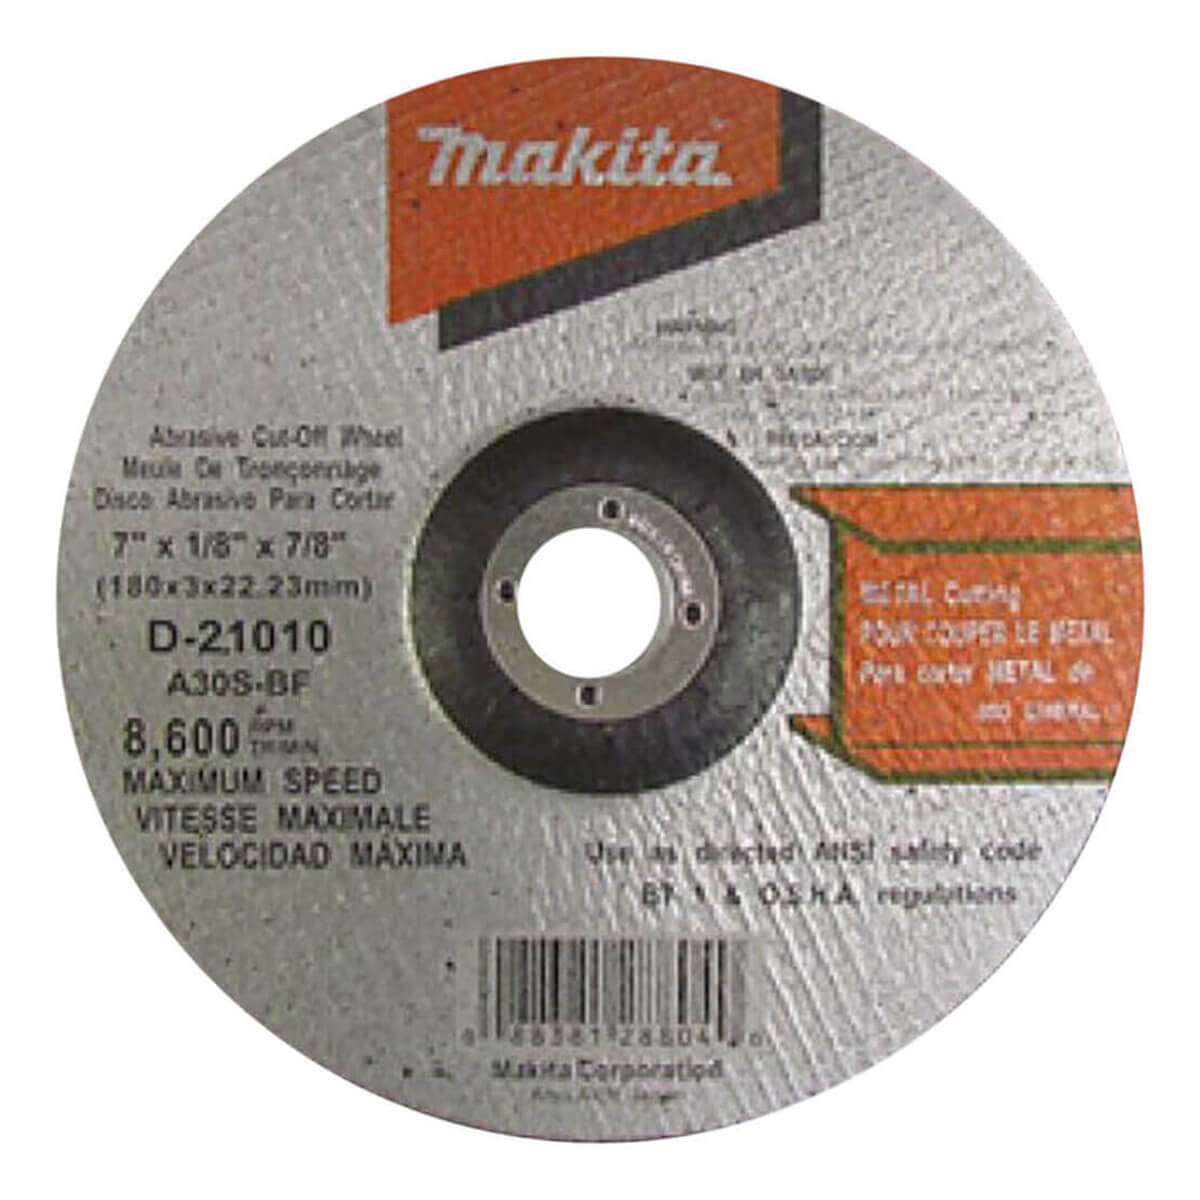 "Makita 7"" General Purpose Grinder Cut-Off Wheel - 7"" x 1/8"" x 7/8"""